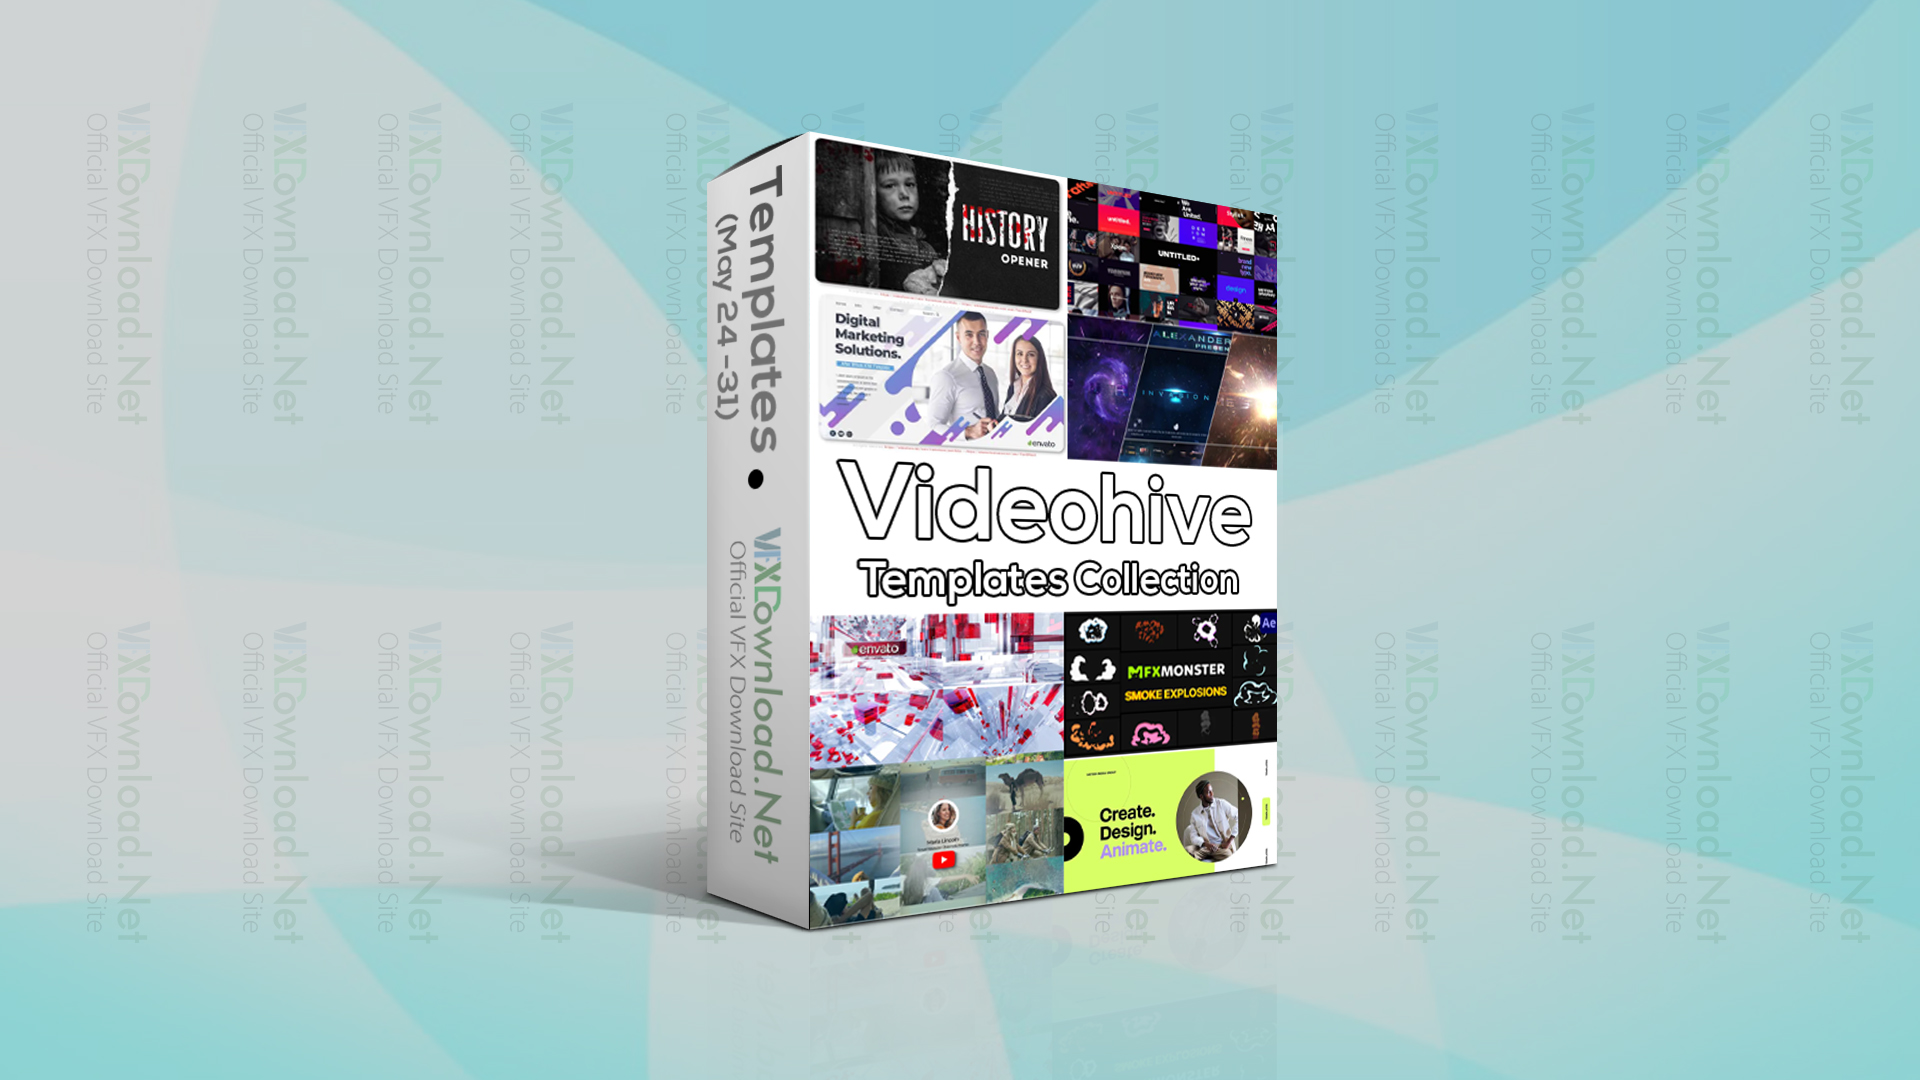 Videohive Templates Collection (24 to 31 May 2021)